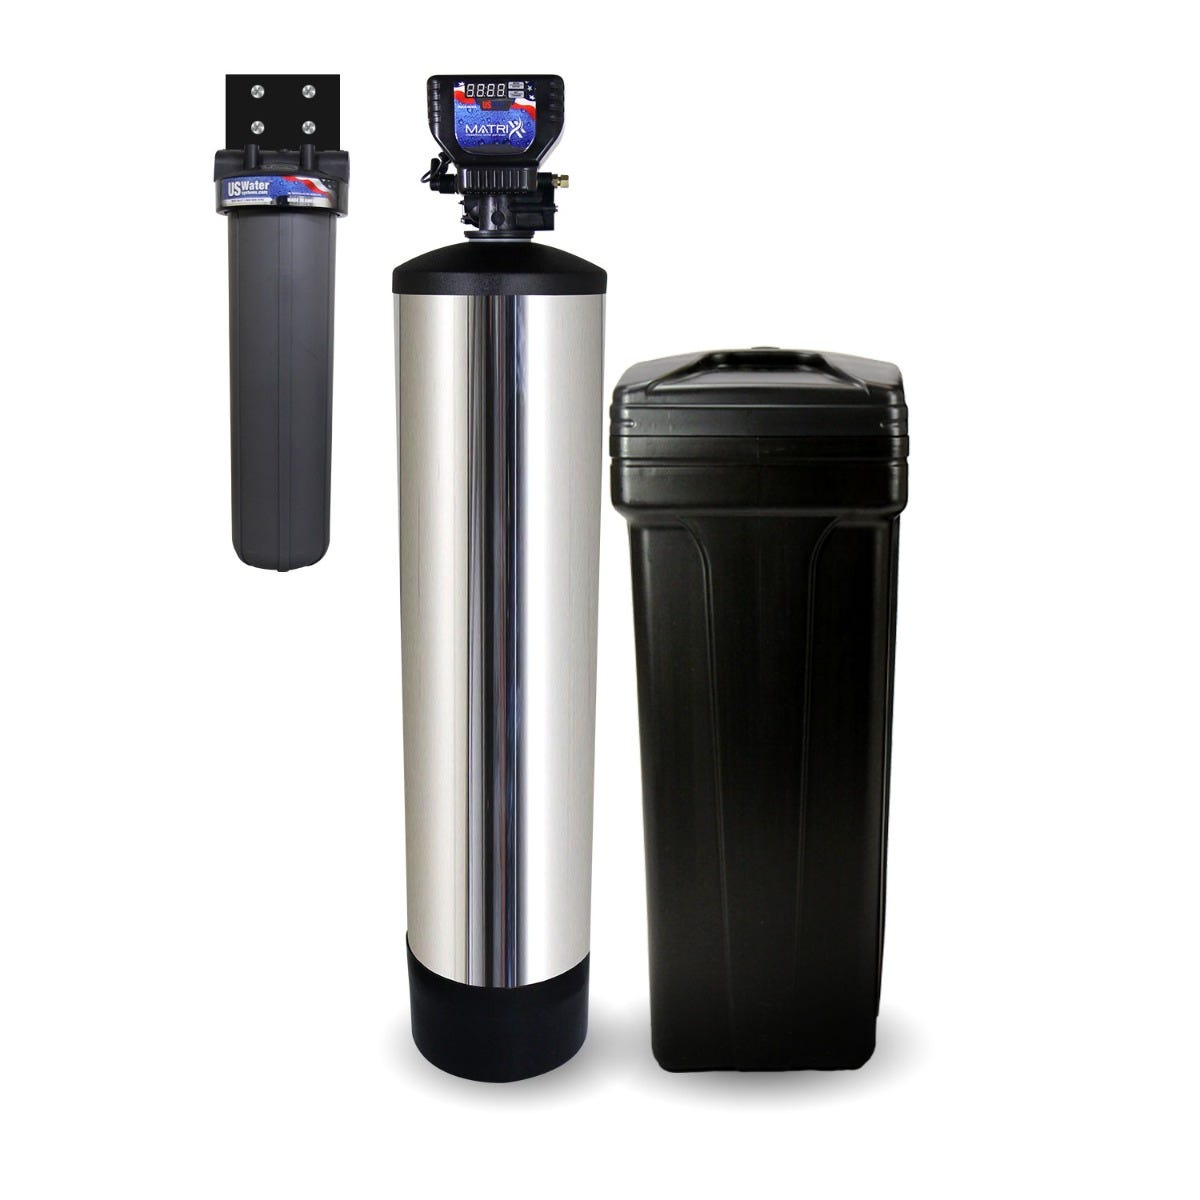 Fusion Nlt Professional Grade Metered Water Softener